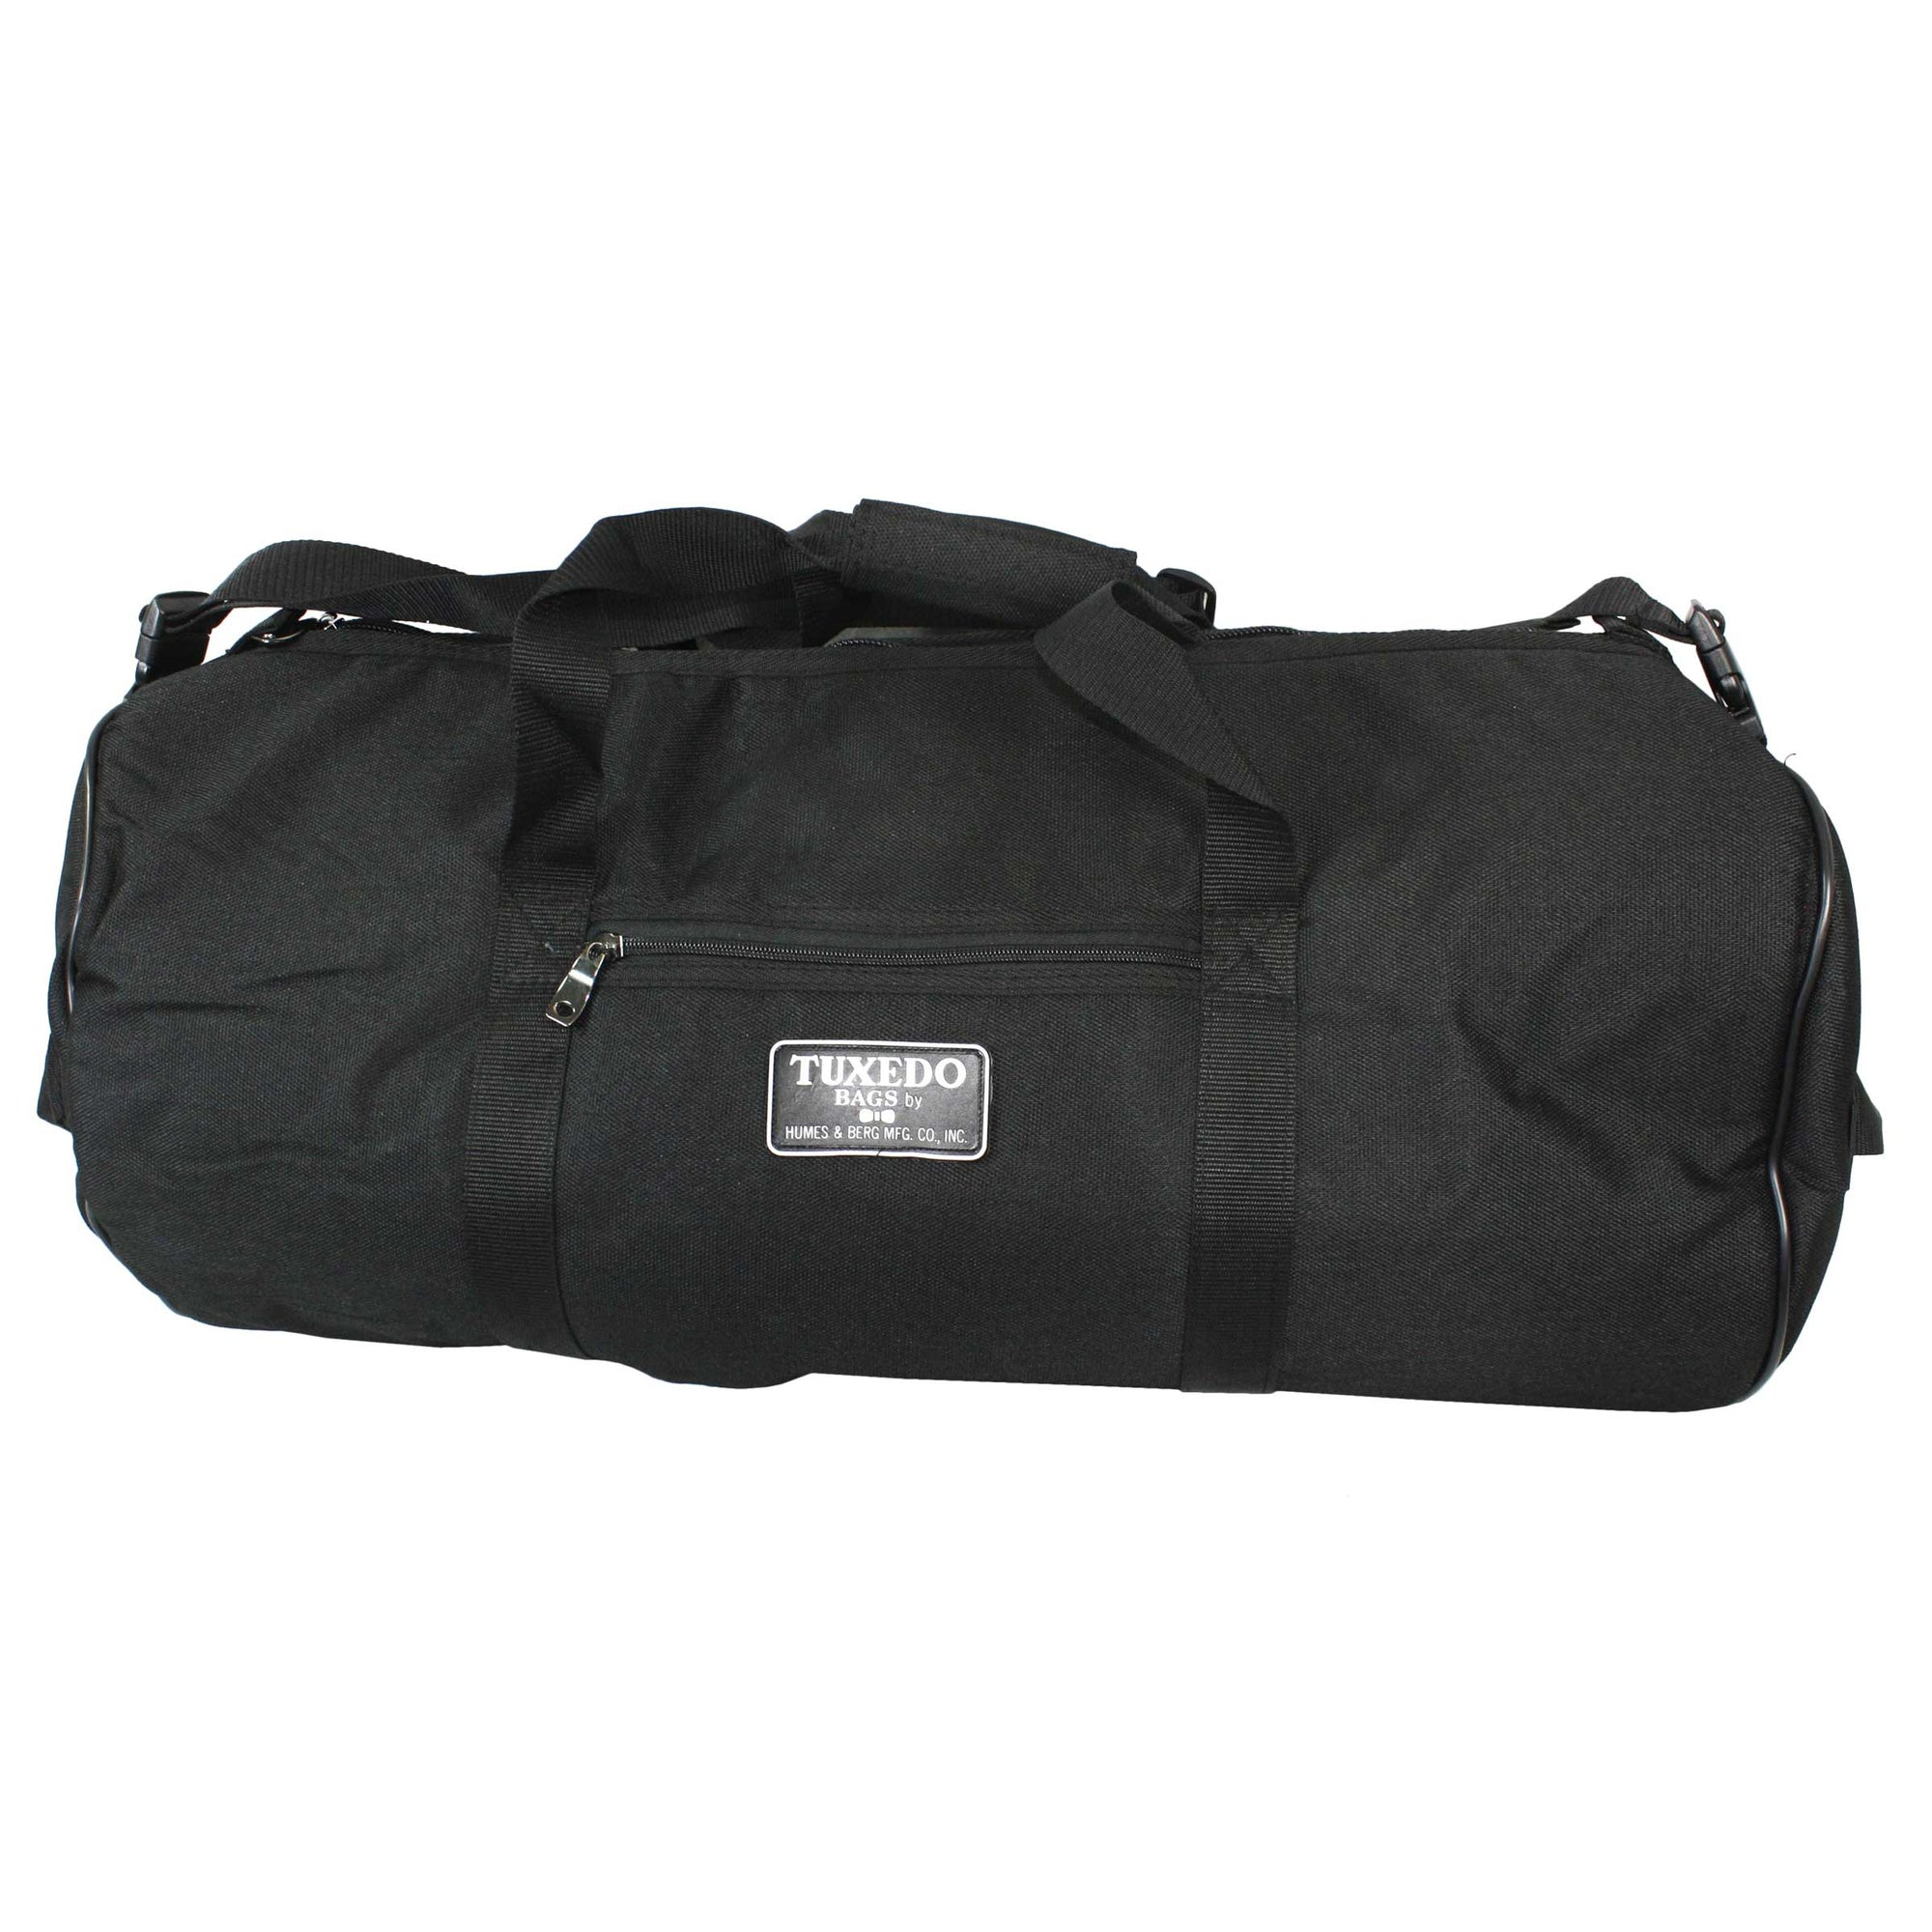 H&B  Tuxedo 28 x 12 Inches Companion Bag